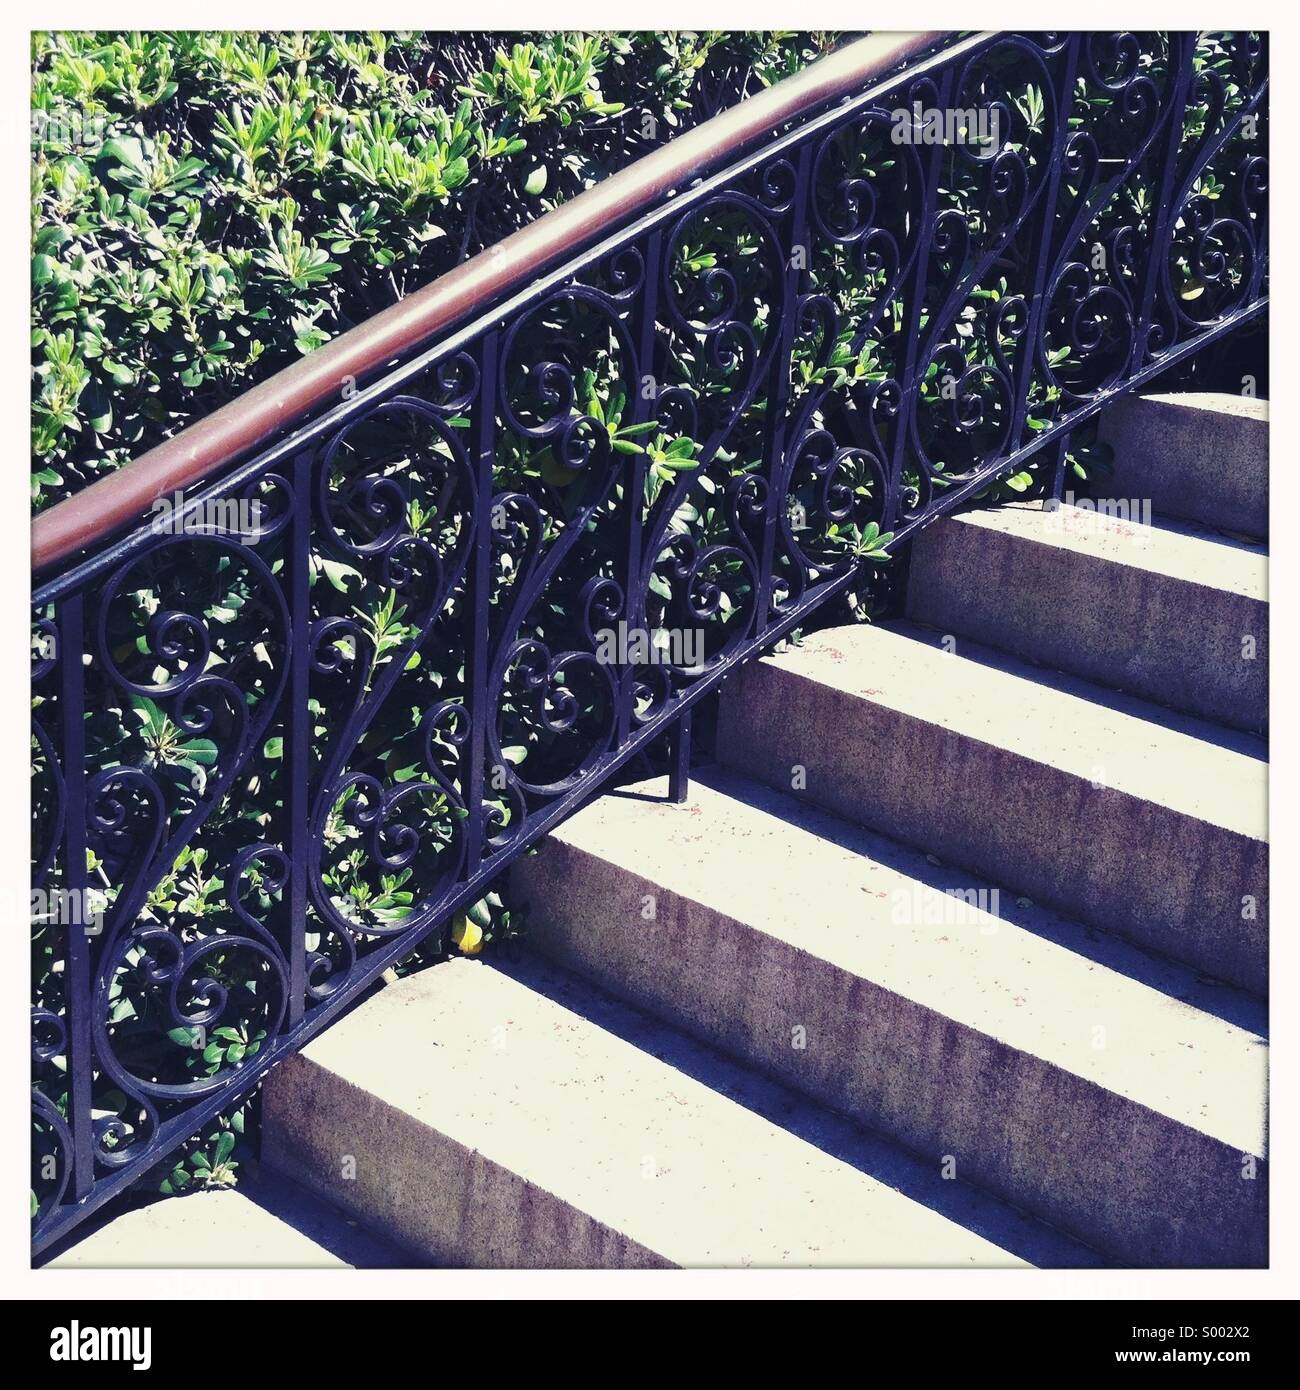 Stairs and a beautiful handrail with green foliage. - Stock Image